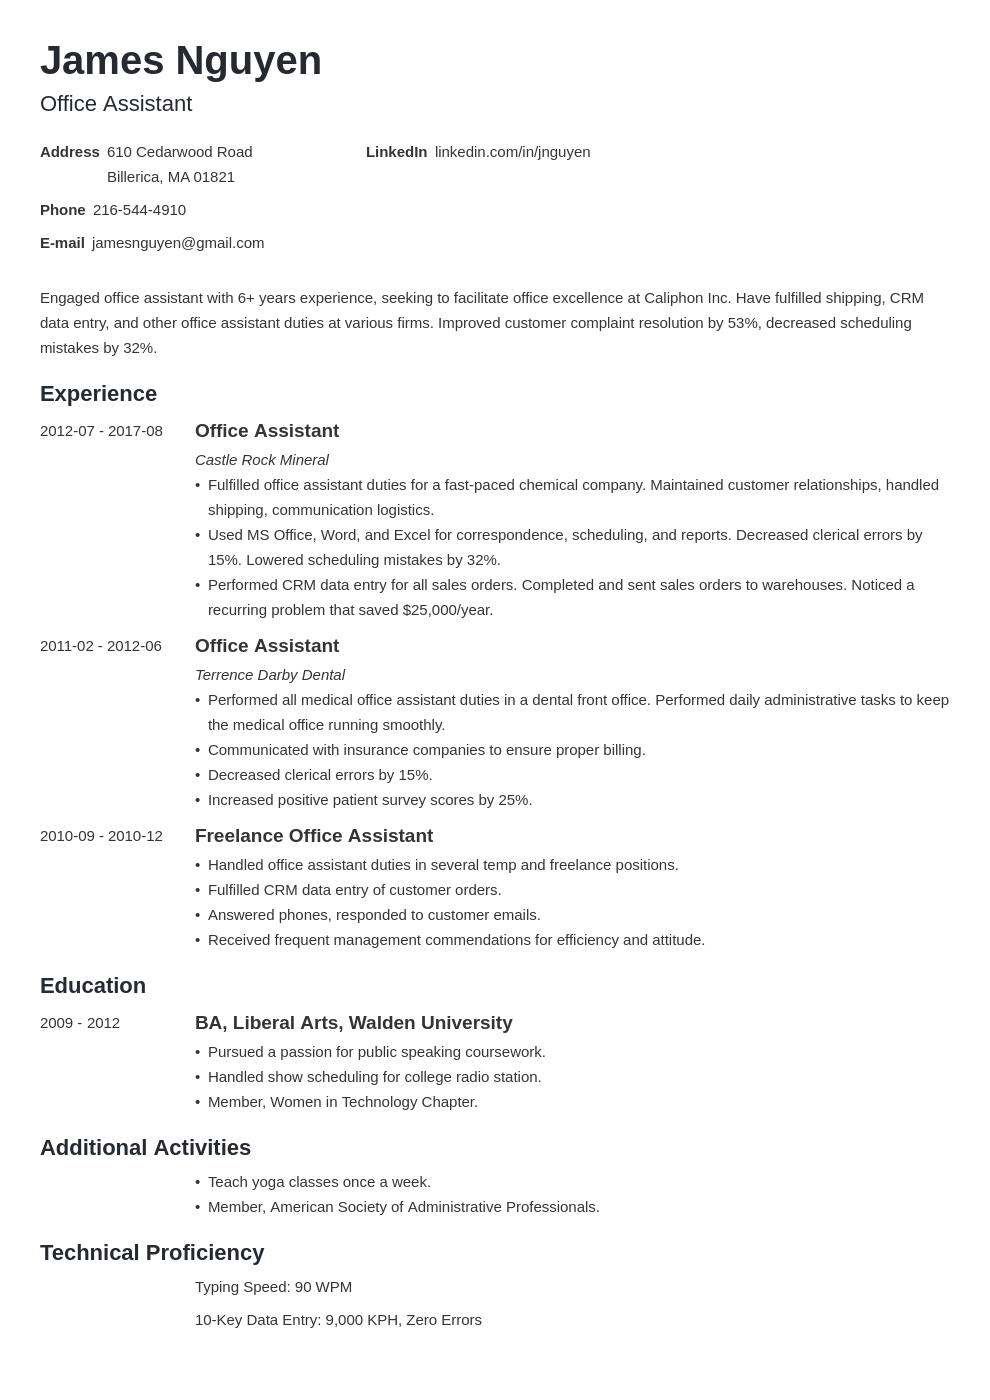 Office Assistant Resume Sample Skills Duties More Tips